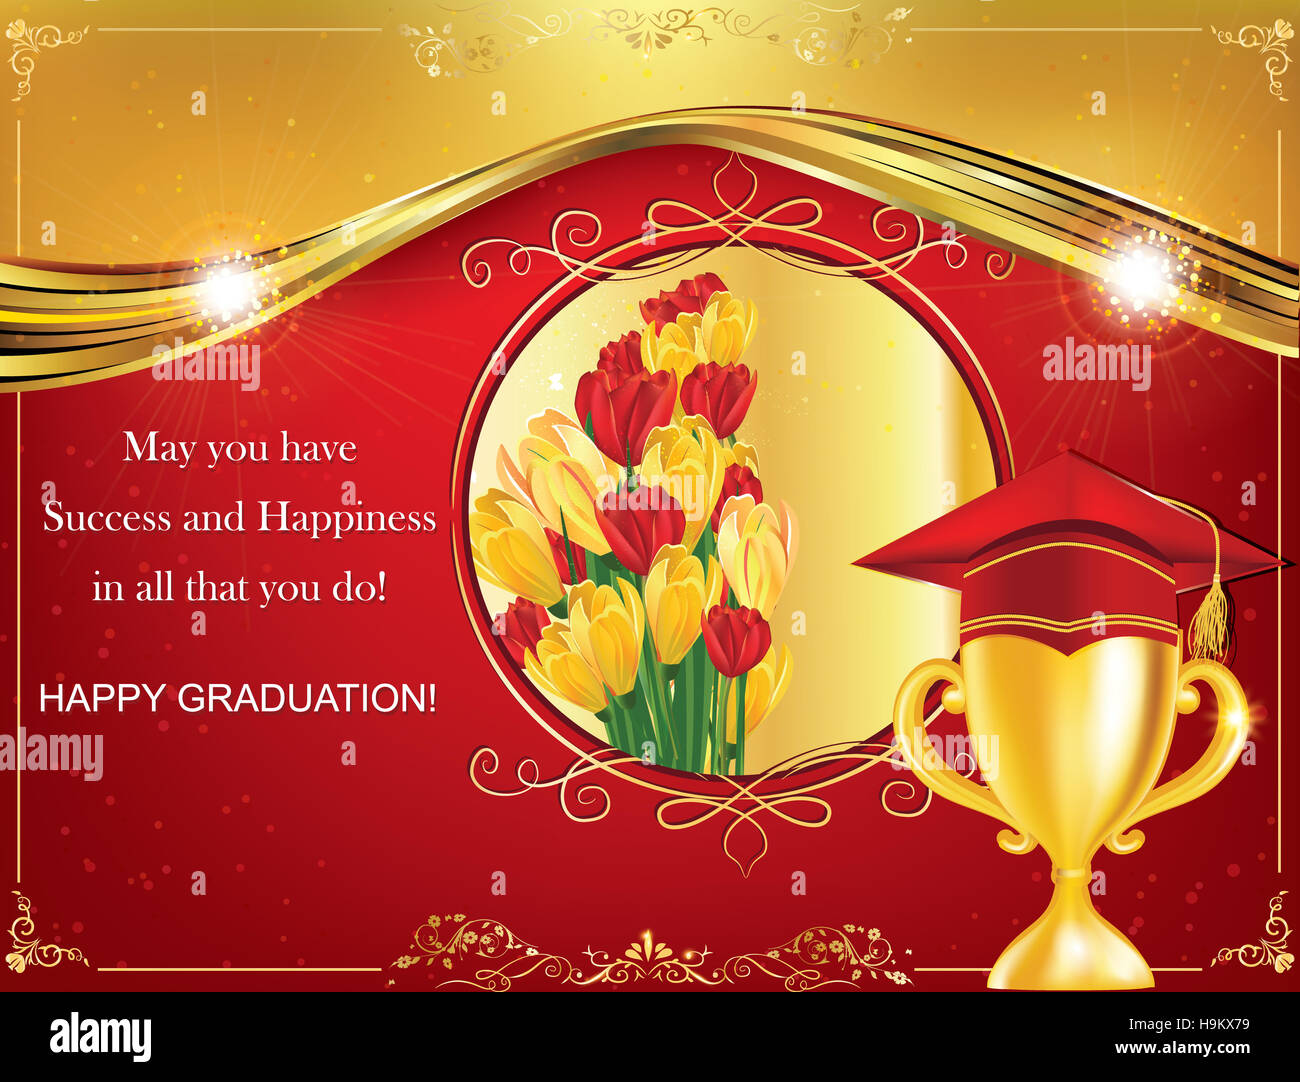 Happy graduation greeting card print colors used stock photo happy graduation greeting card print colors used kristyandbryce Choice Image